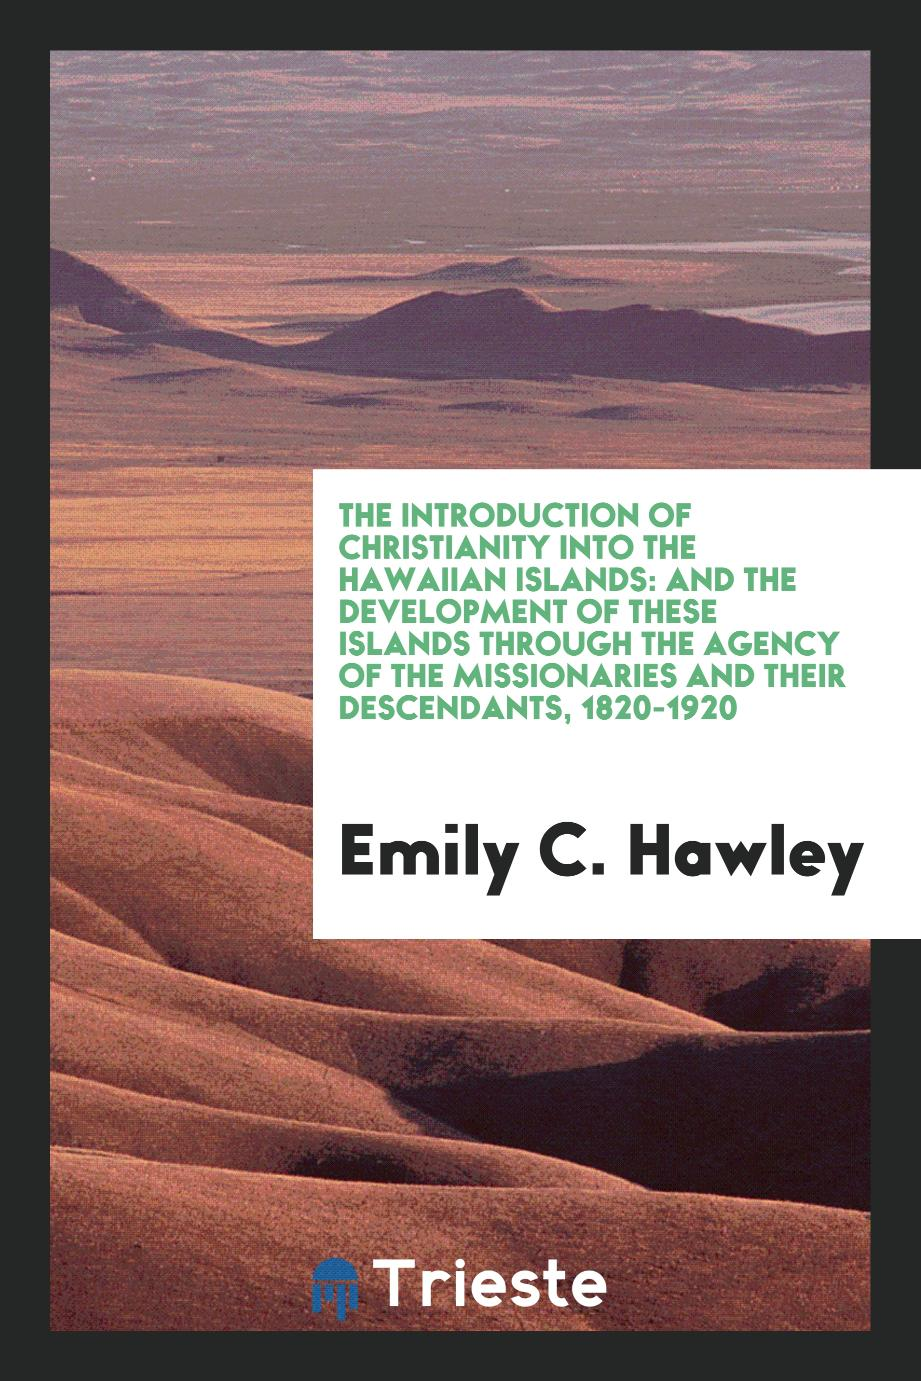 The Introduction of Christianity Into the Hawaiian Islands: And the Development of These Islands through the agency of the missionaries and their descendants, 1820-1920